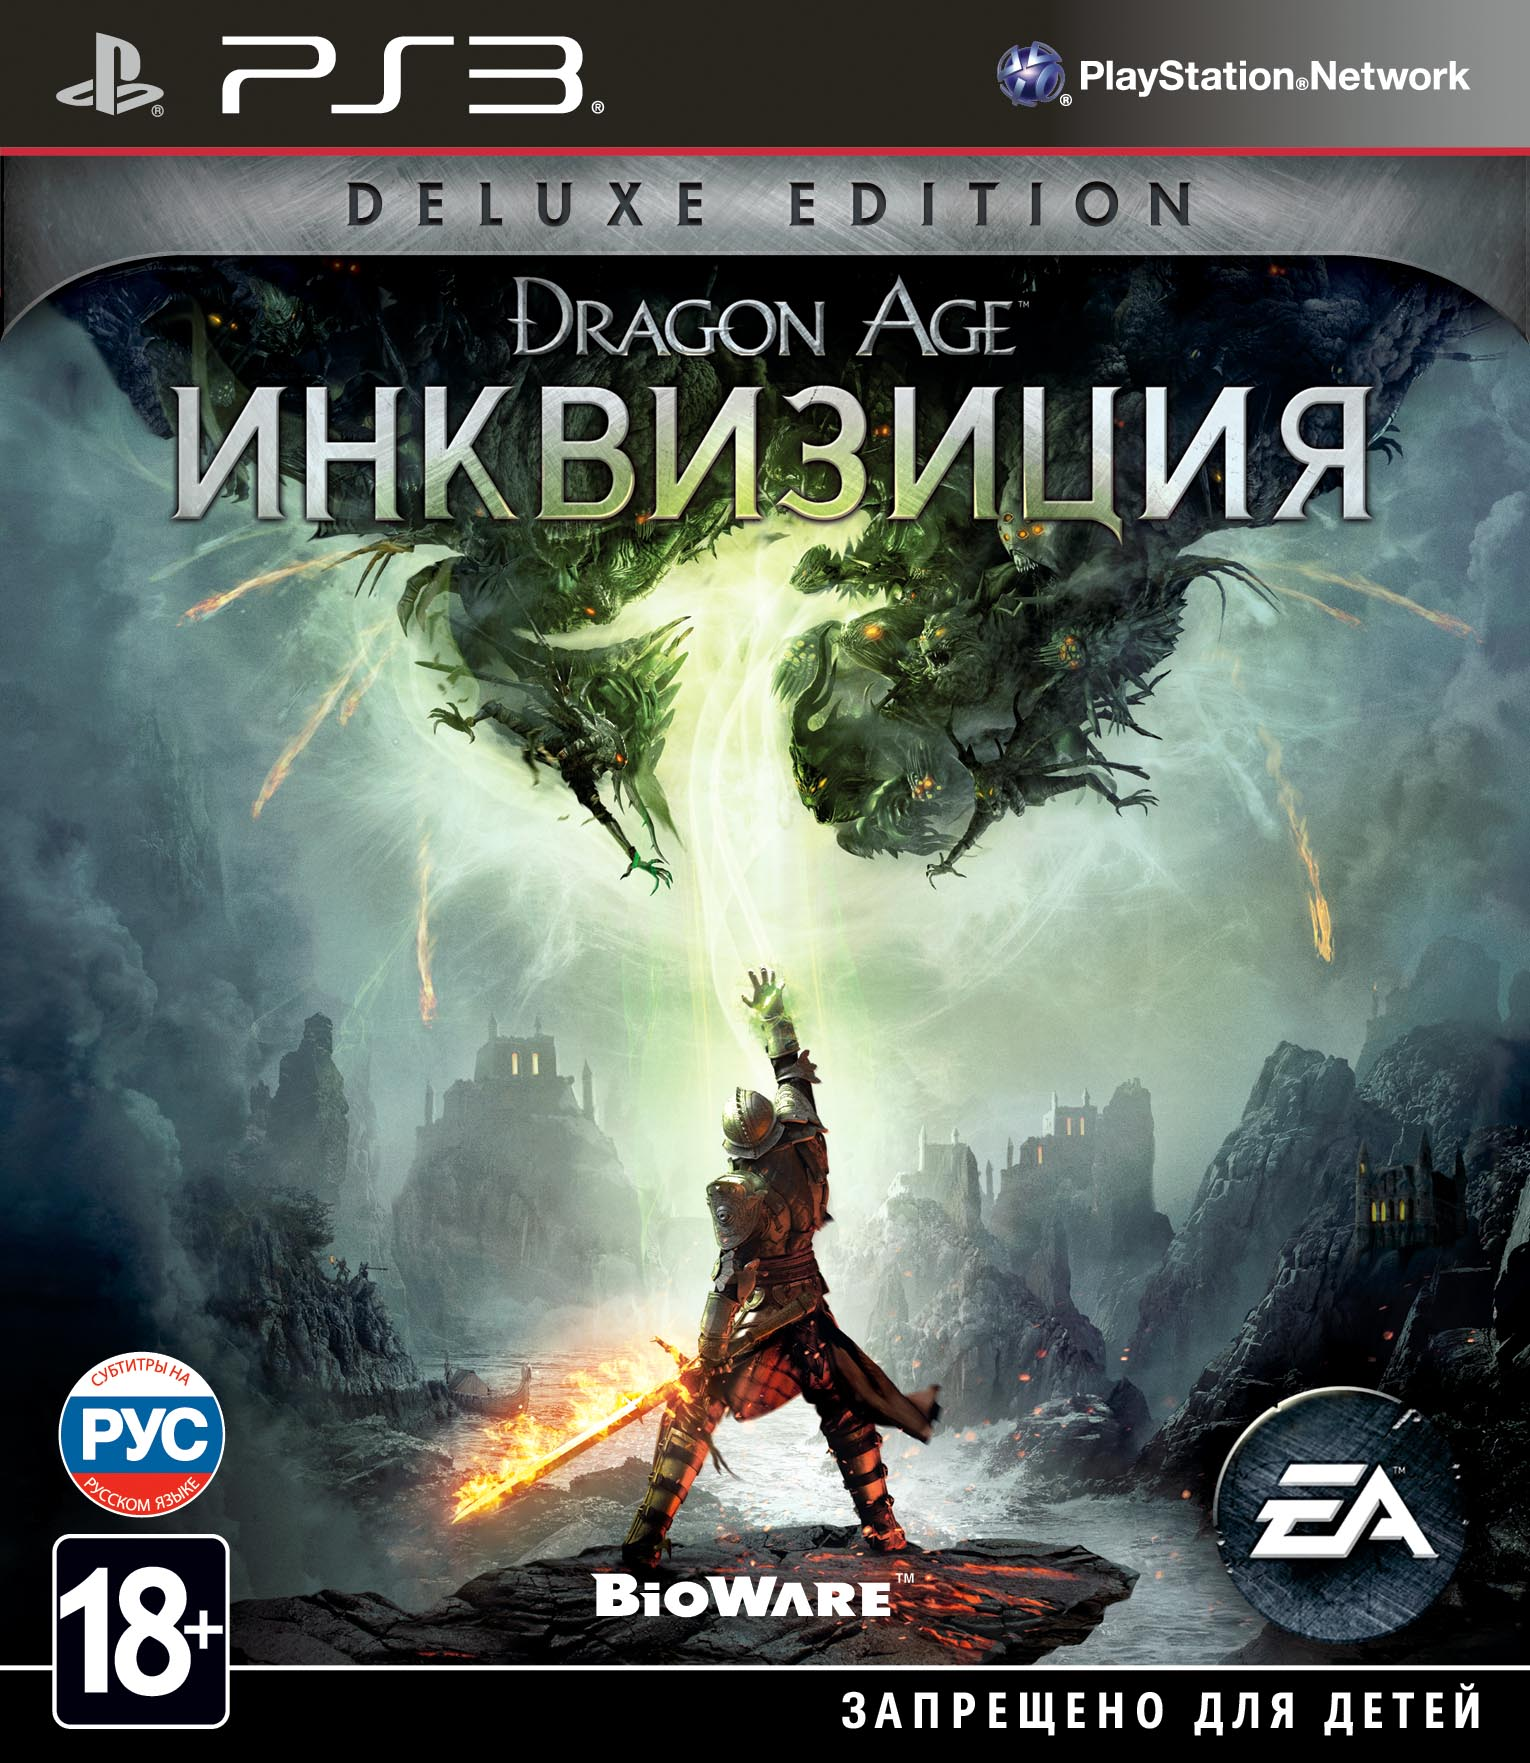 Dragon Age: Инквизиция Deluxe Edition (PS3)